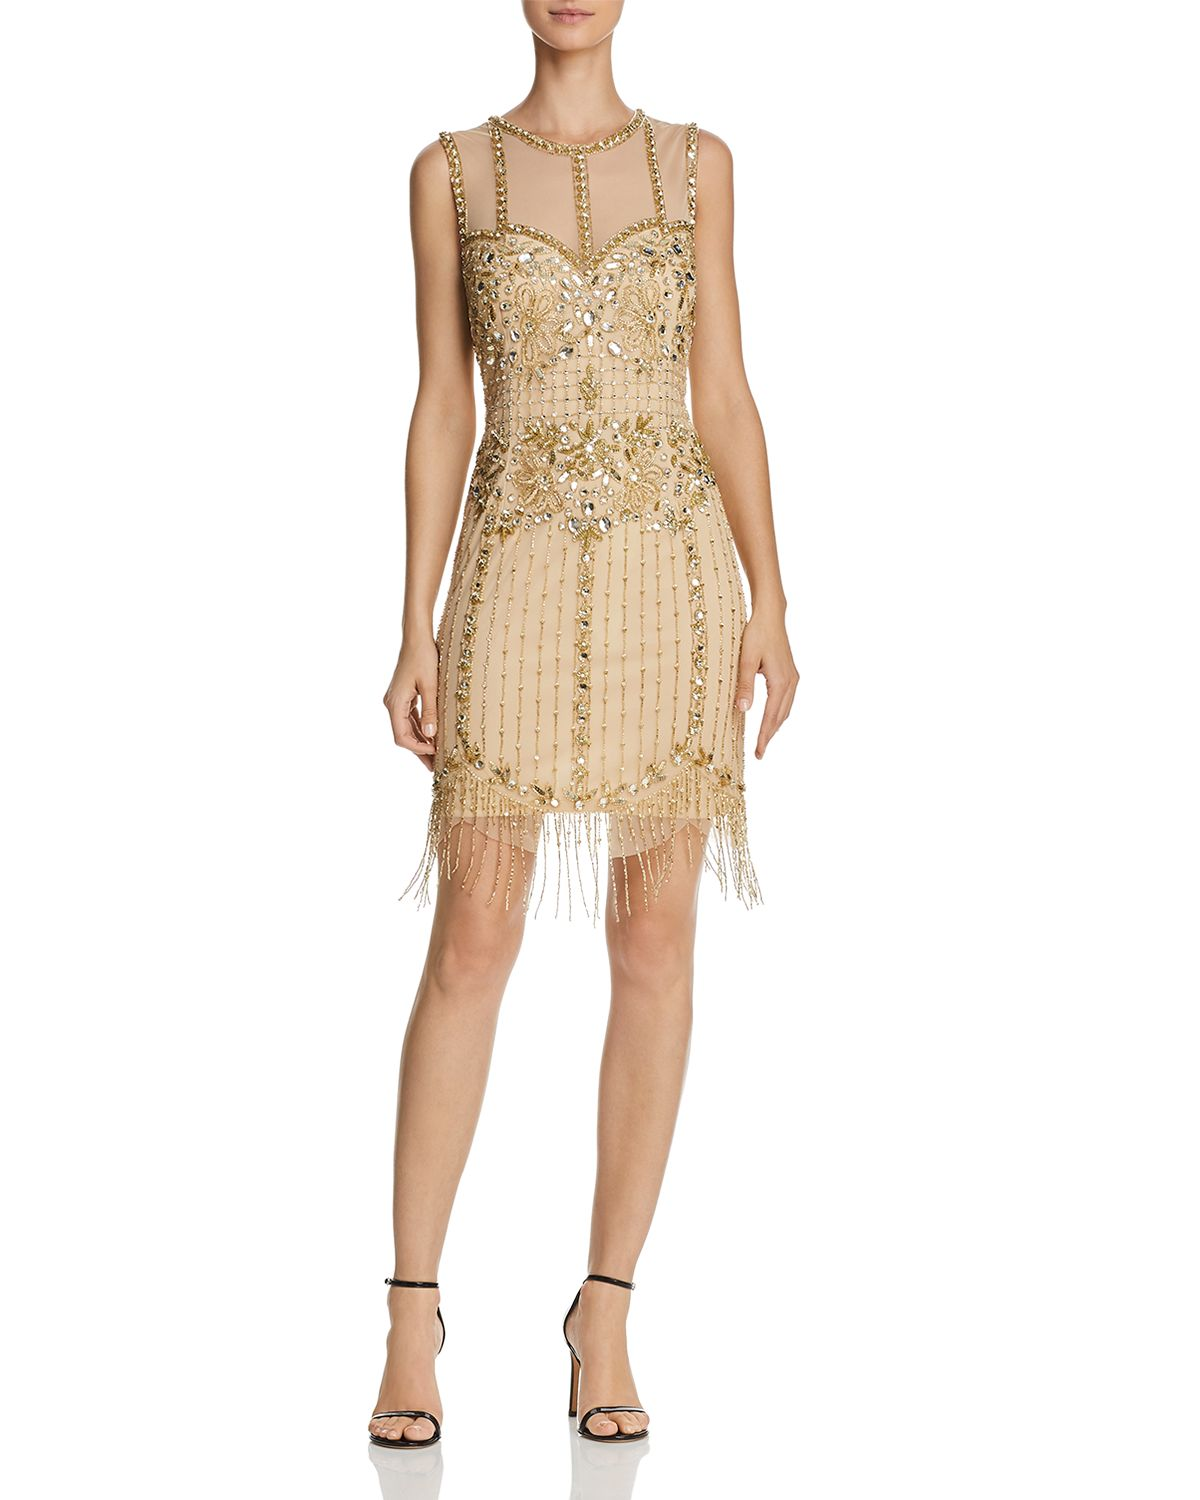 Sleeveless Beaded Fringe Dress by Aidan Mattox